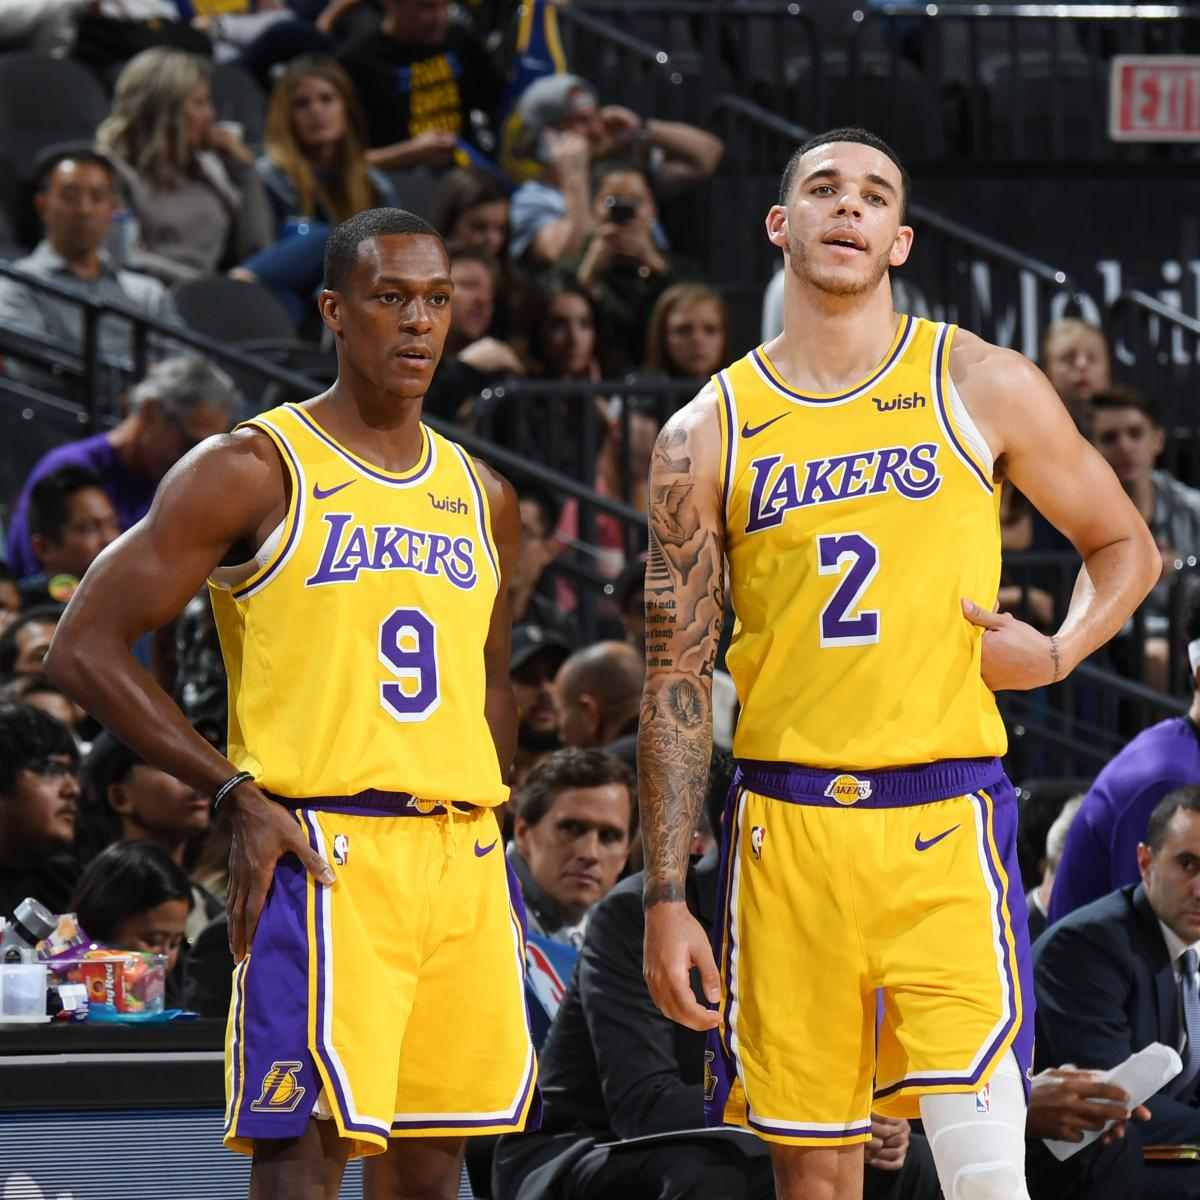 Lakers News: Lonzo Ball Will Start After Rajon Rondo ...Lakers News